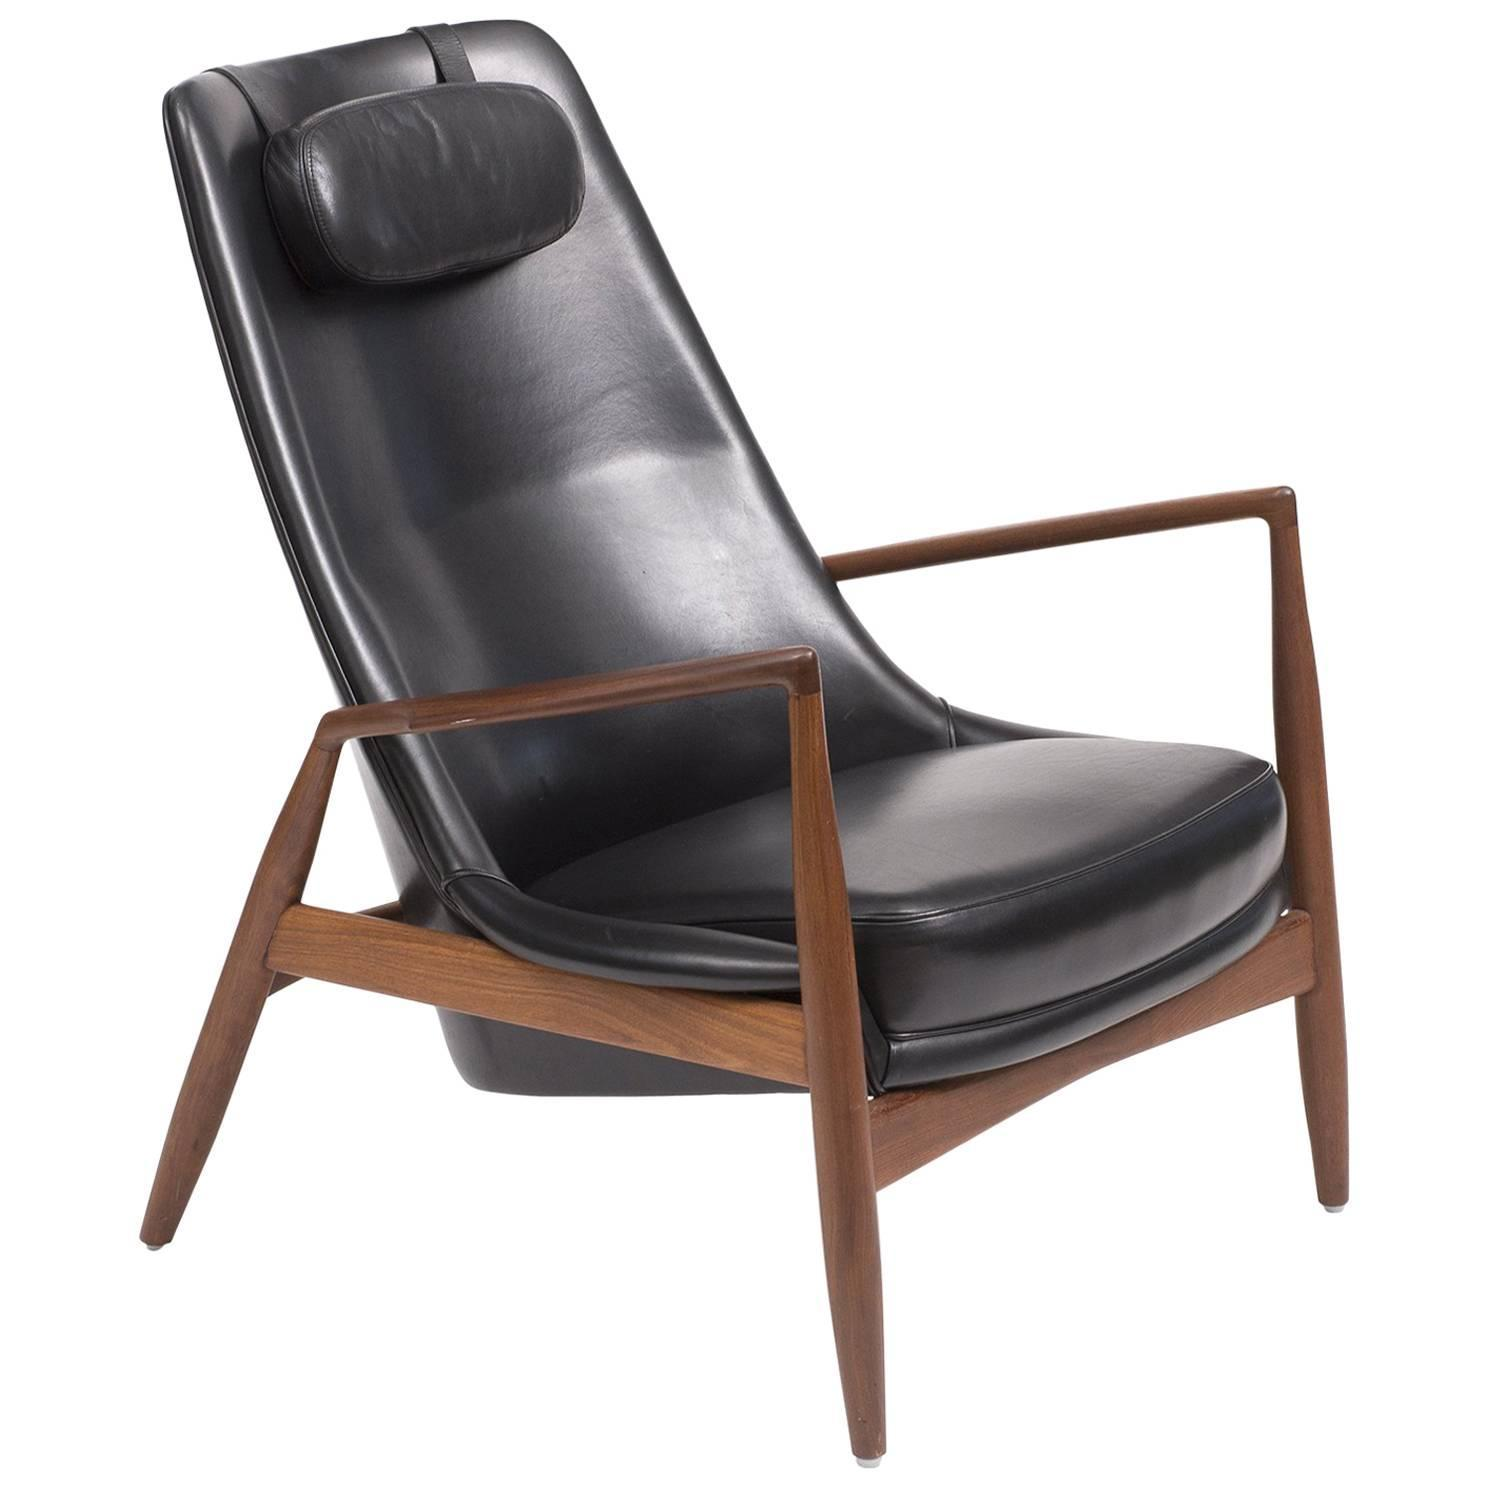 This sculptural pair of lounge chairs by ib kofod larsen is no longer - Ib Kofod Larsen High Back Seal Chair In Teak And Black Leather For Ope 1960s For Sale At 1stdibs